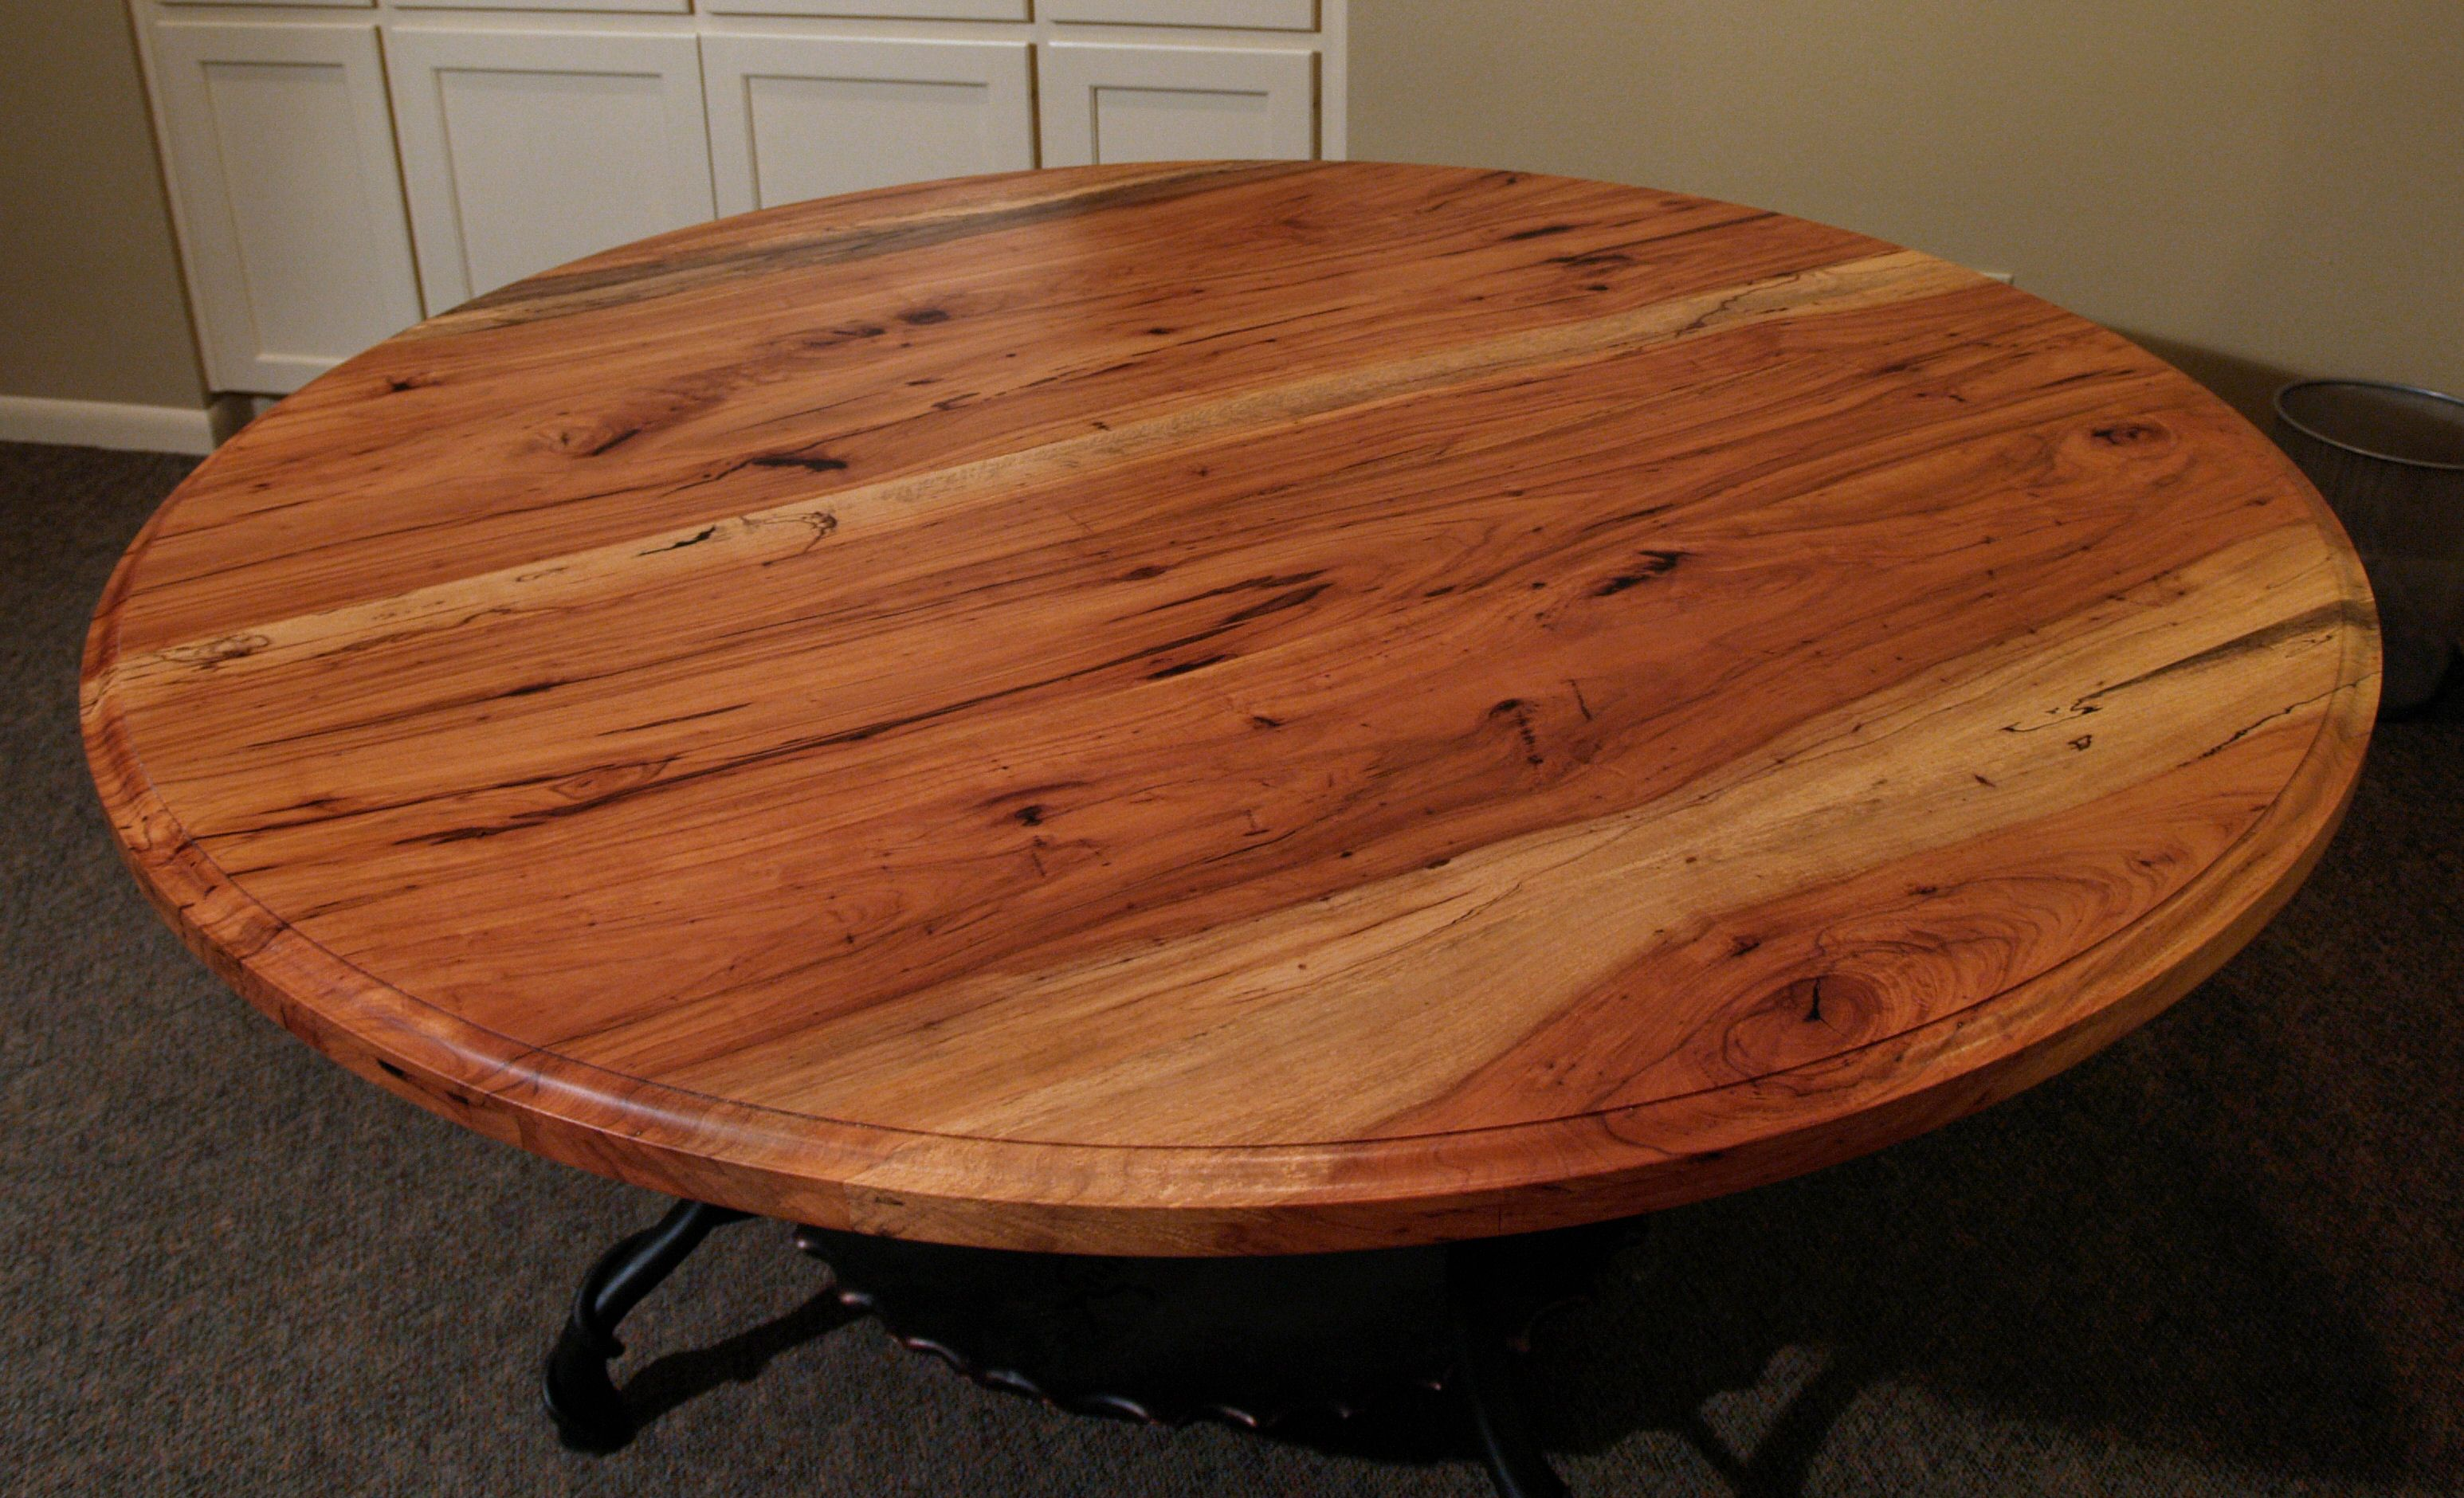 Spalted Pecan Wood Countertop Gallery by DeVos Custom